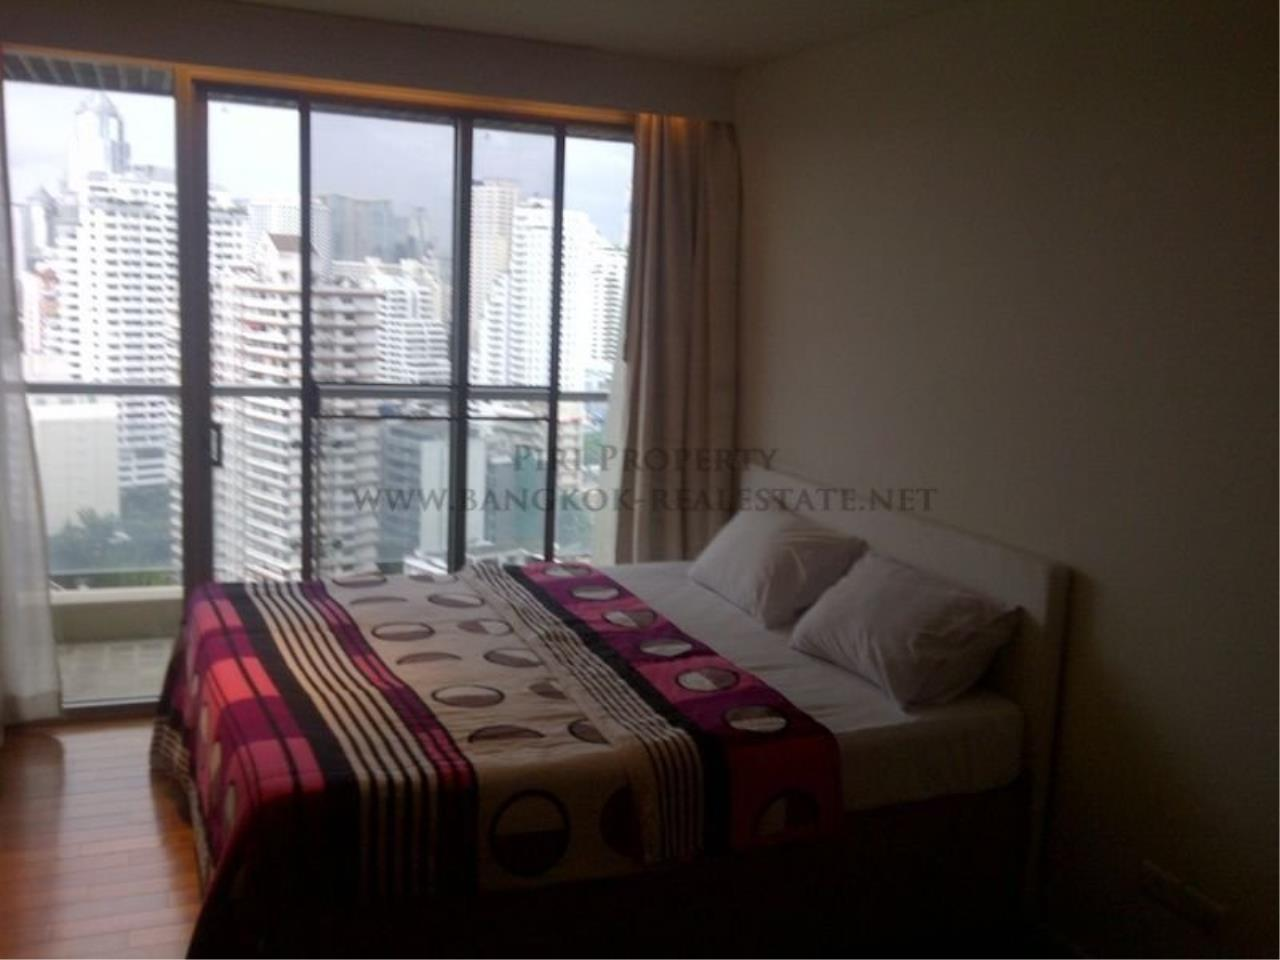 Piri Property Agency's 2 Bedroom Condo in The Lakes building for Rent - High Floor 9